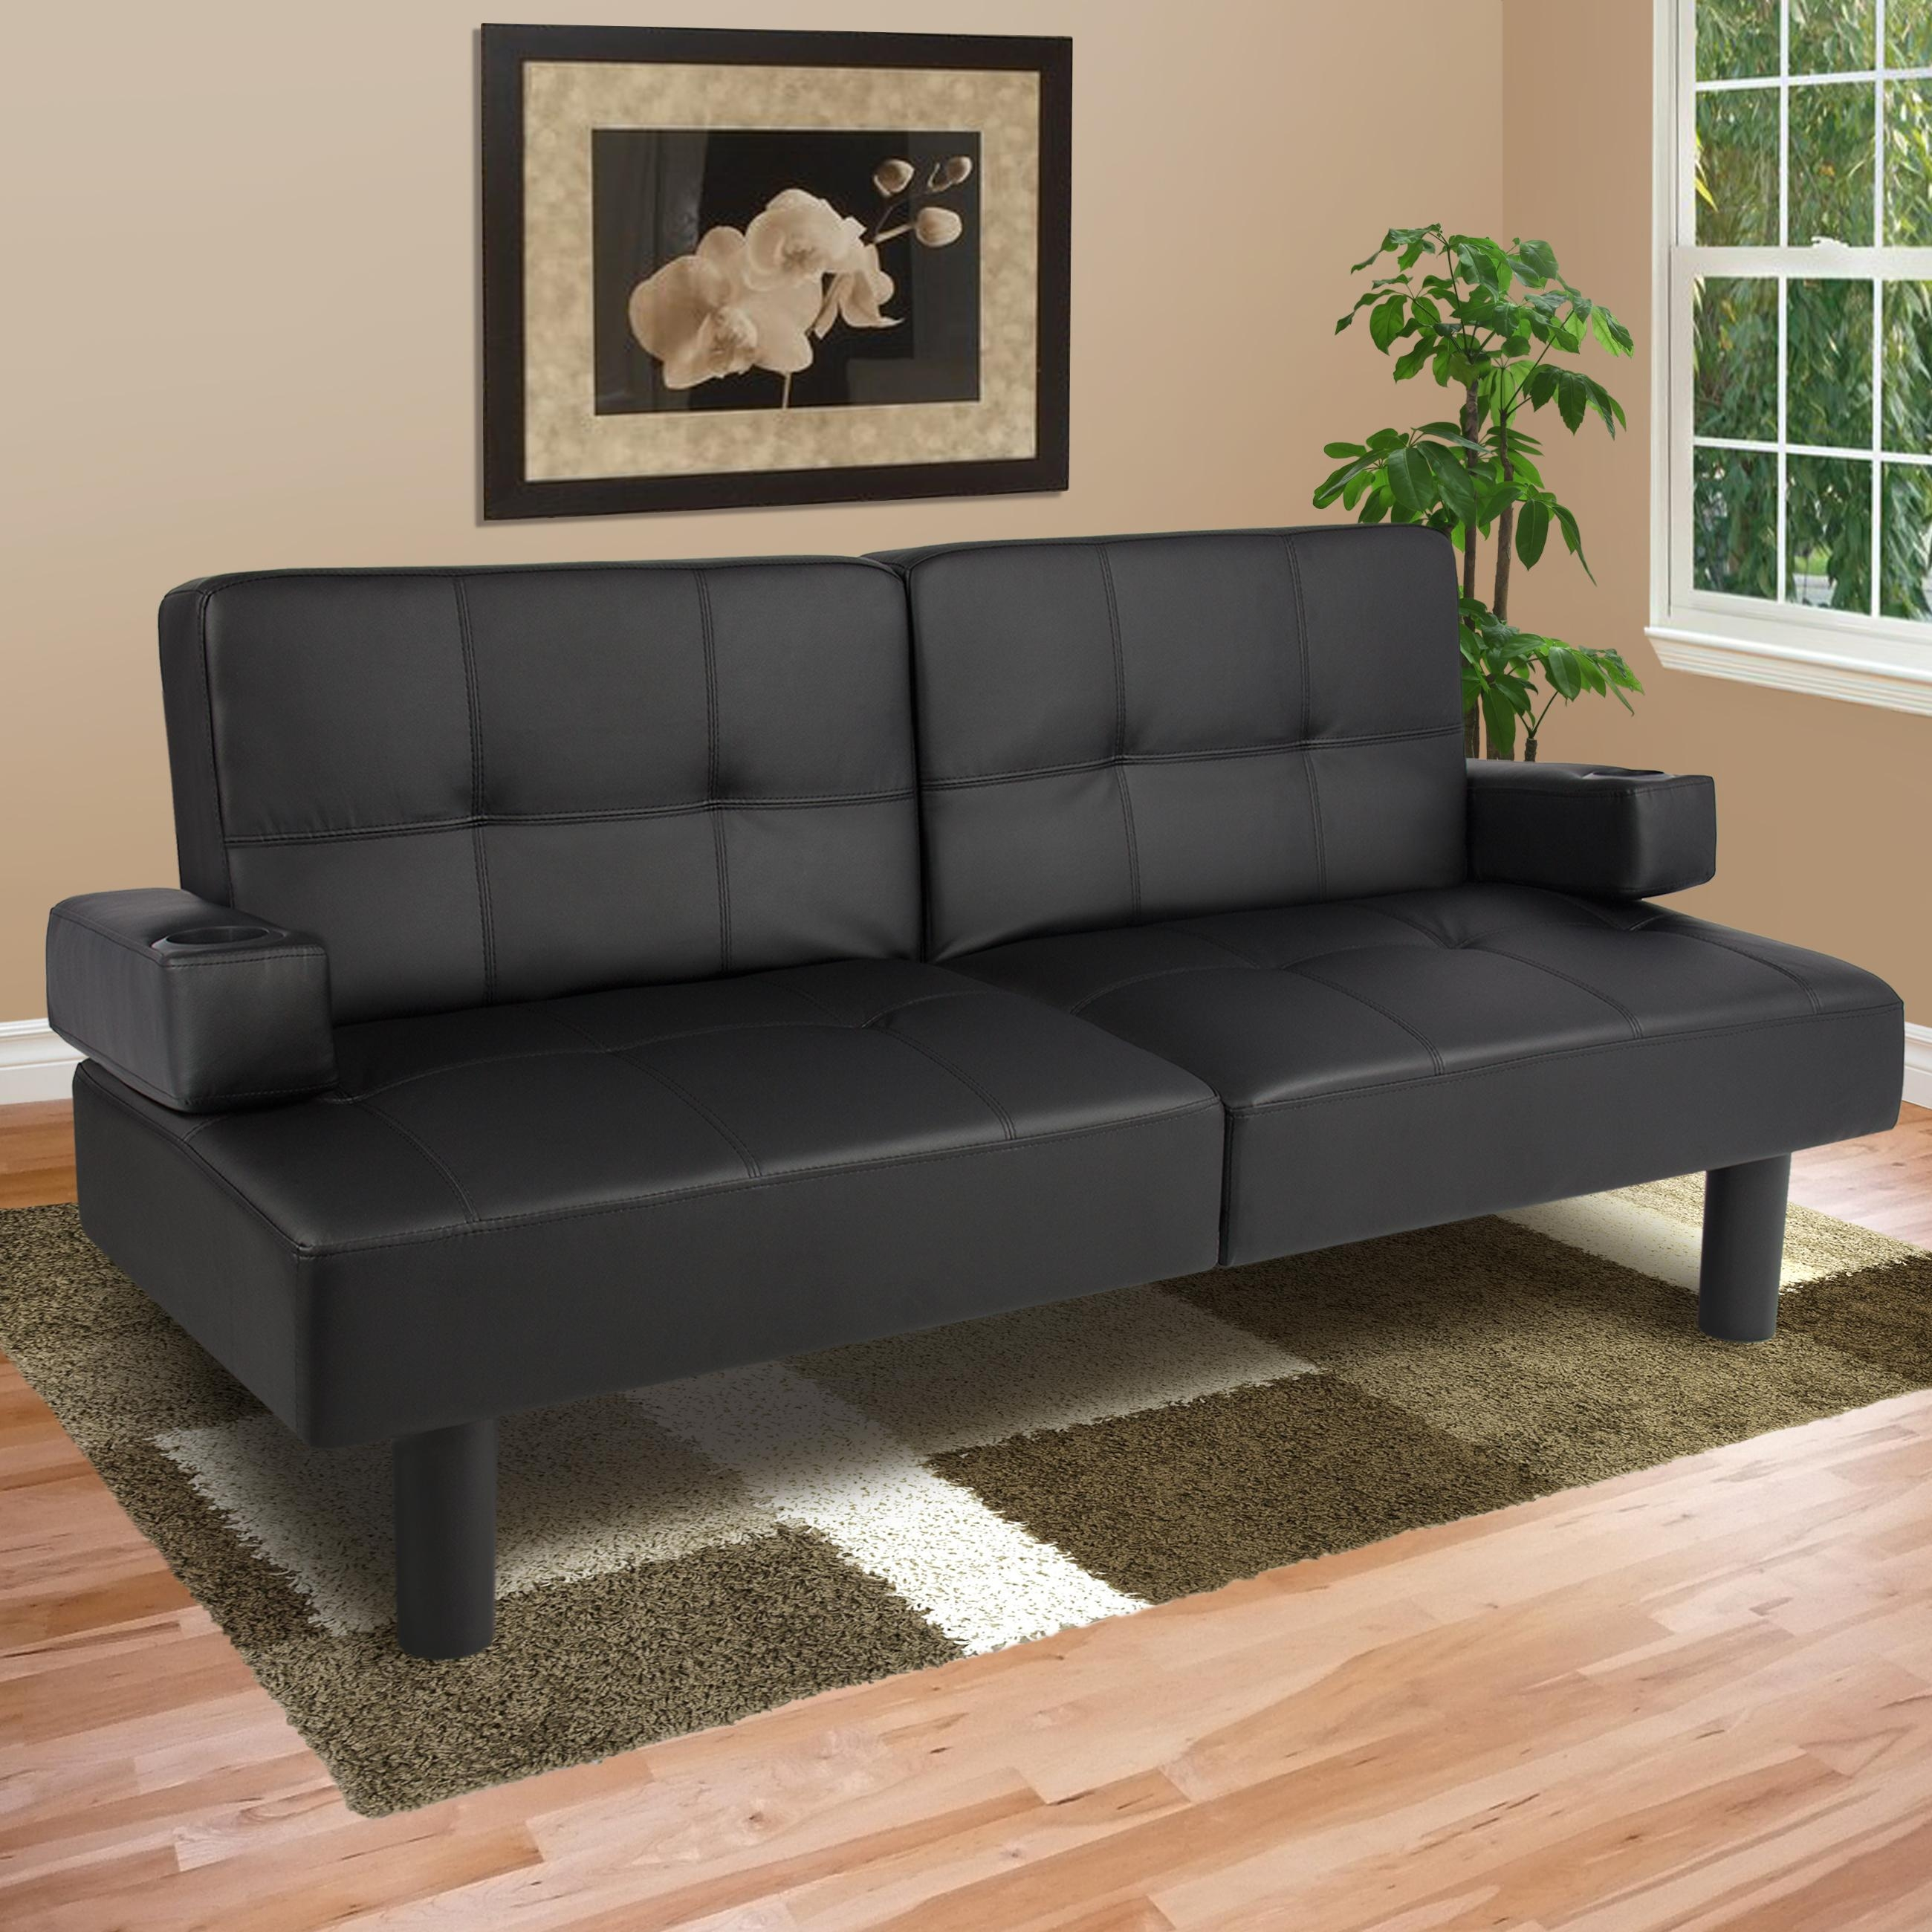 Leather Faux Fold Down Futon Sofa Bed Couch Sleeper Furniture In Convertible Sofa Chair Bed (View 16 of 20)